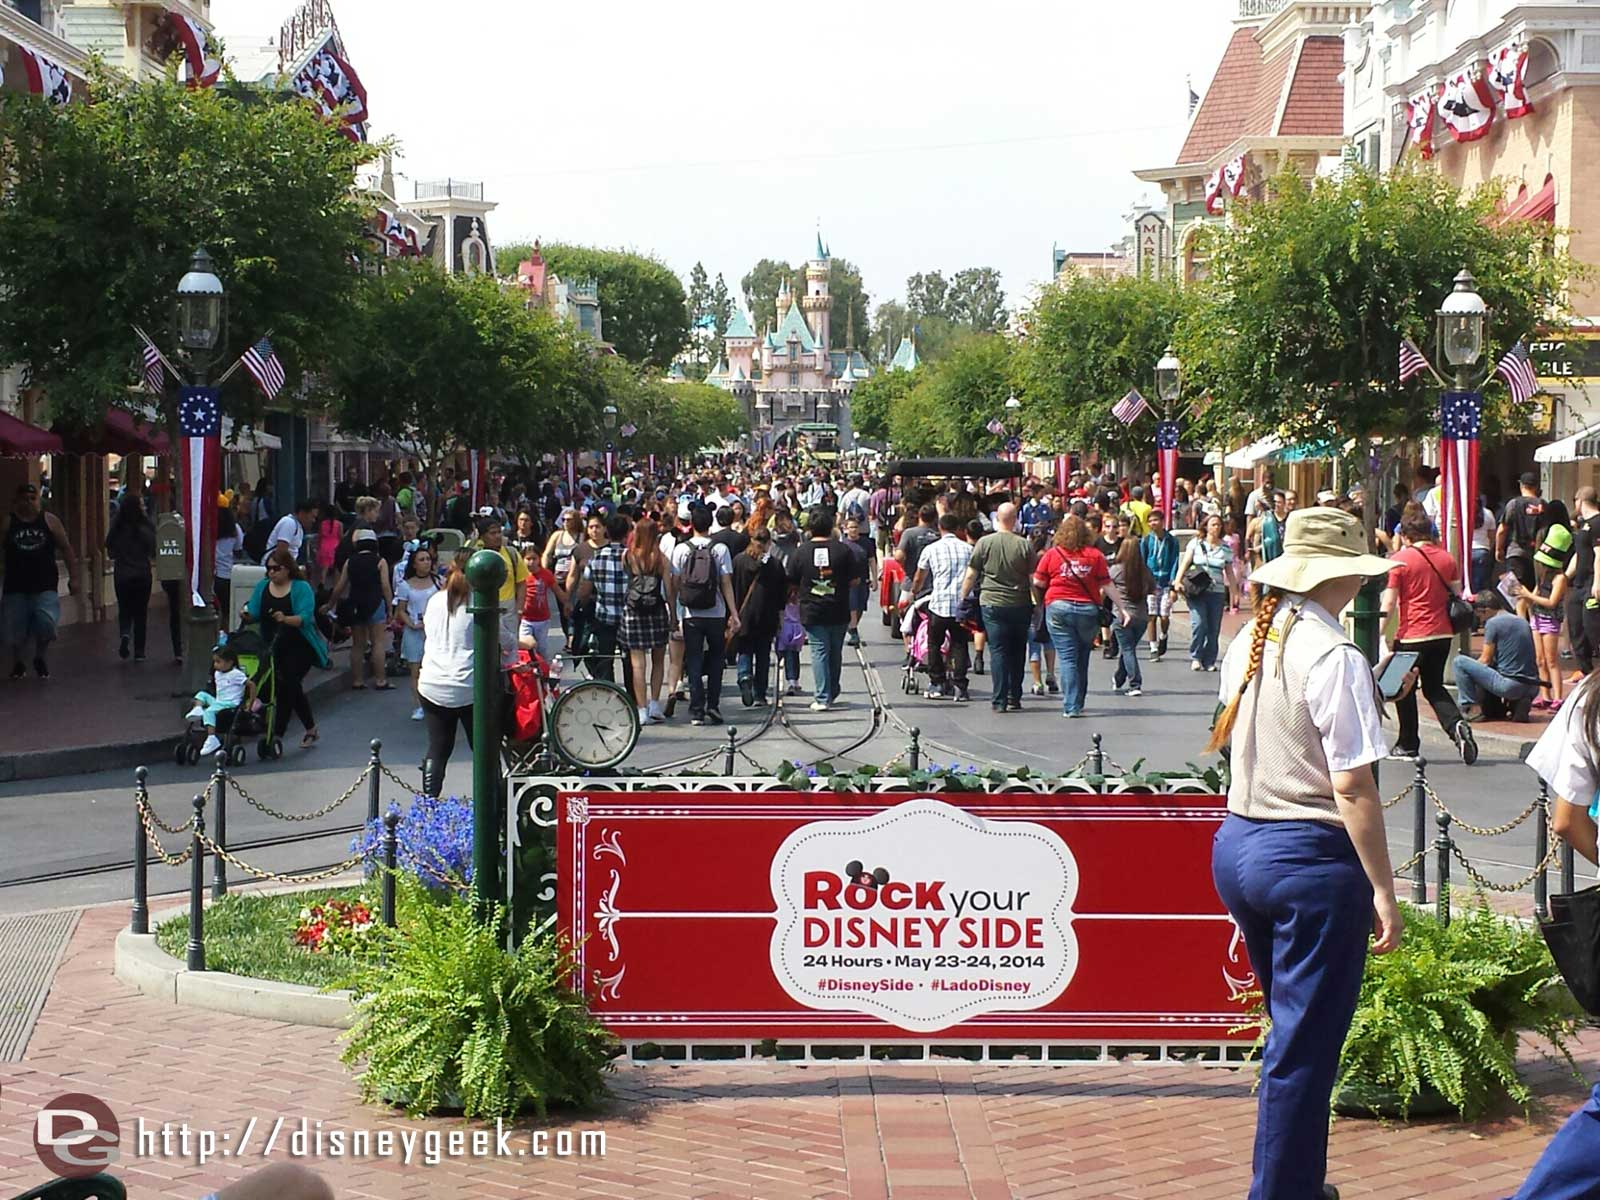 #Disneyland Main Street USA I count seven vehicles running this afternoon #Disney24  #DisneySide